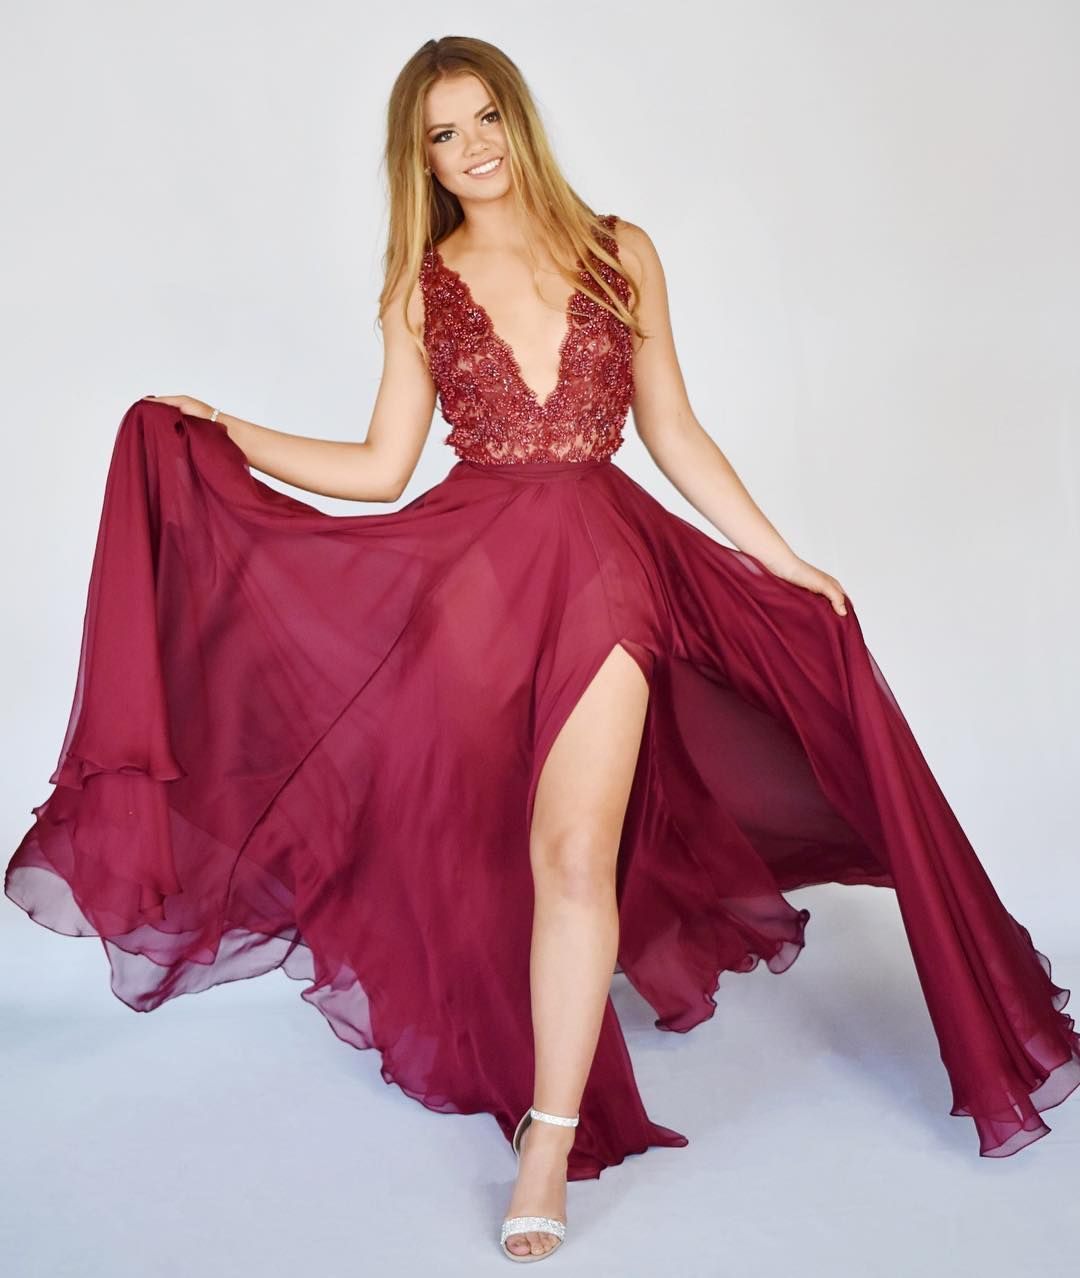 "René Atelier on Instagram: ""Playful couture 💋 #renéatelier #fashiondesign #bodysuit #sheer #beadedlace #flowydress #fashion #redcarpetstyle #celebritystyle #madeinusa…"" 1"